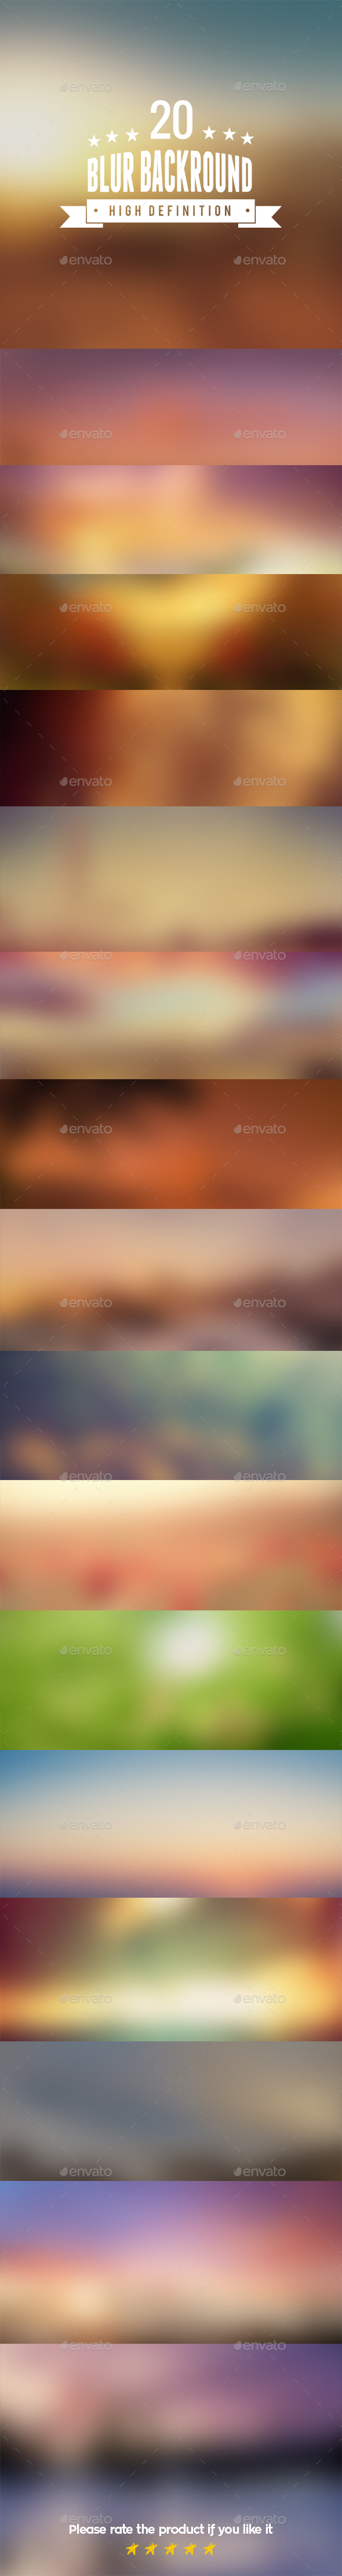 20 Blurred Backgrounds High Definition - Backgrounds Graphics